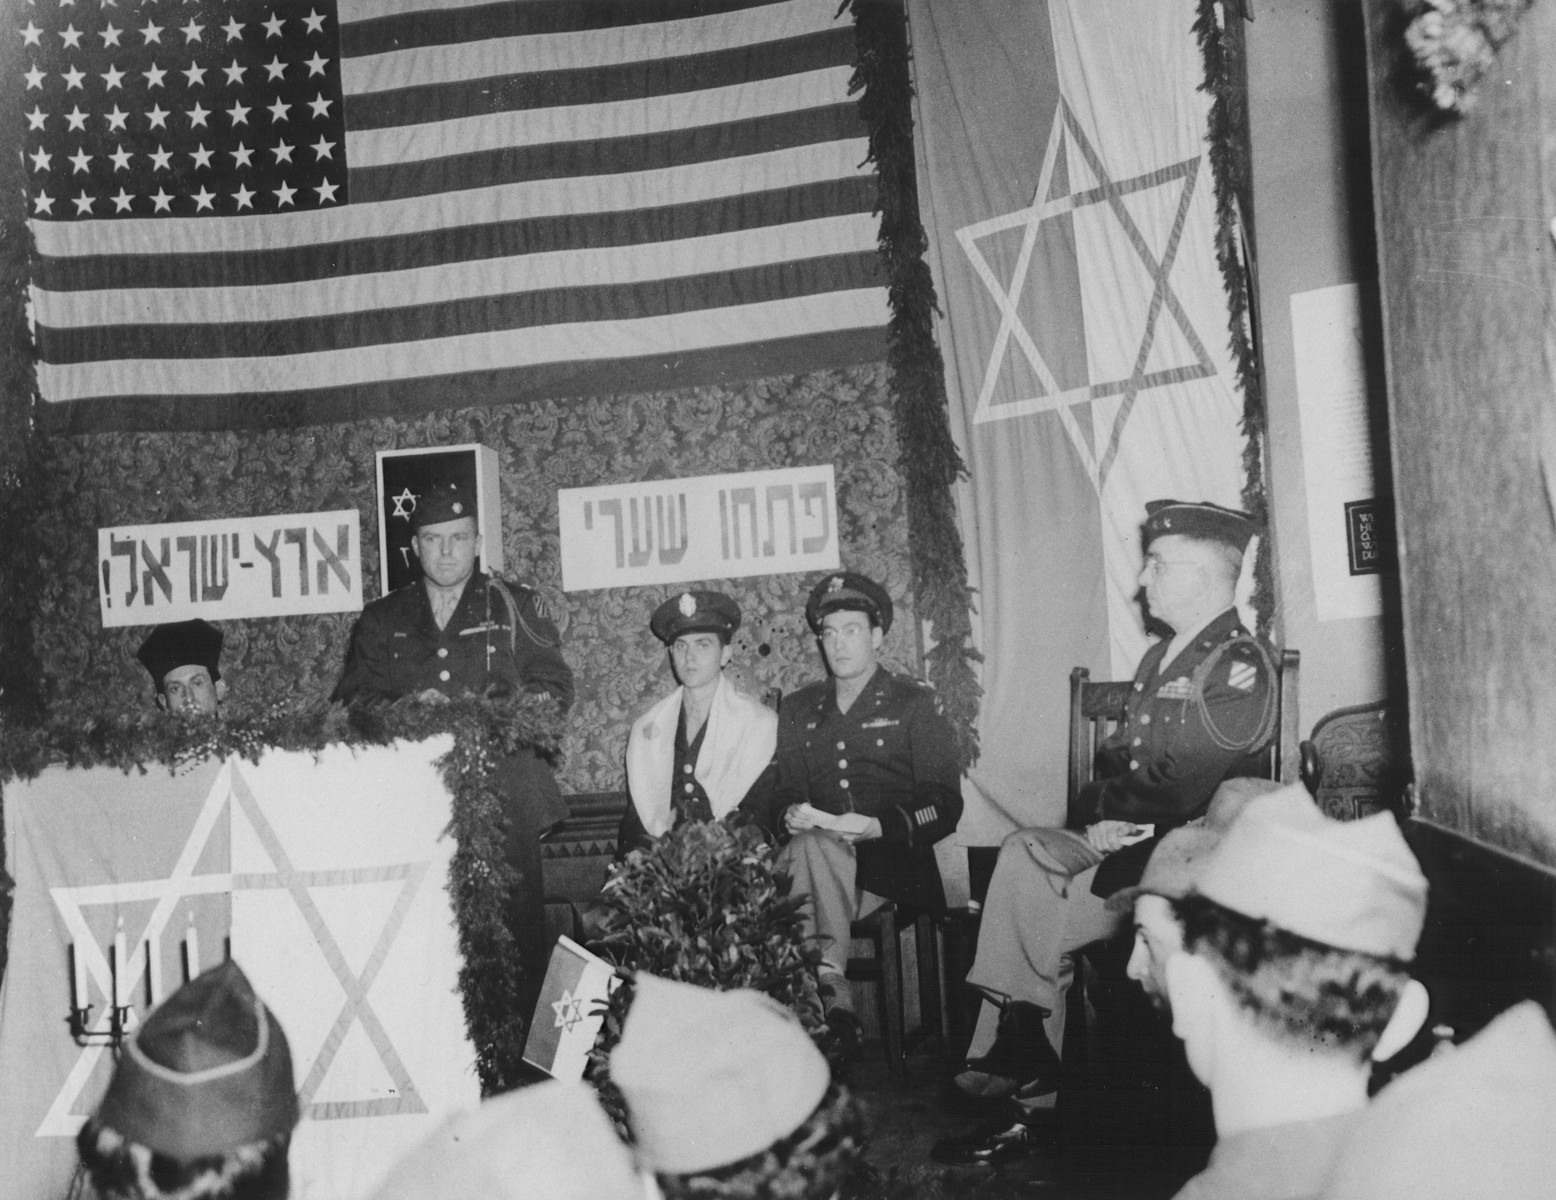 """Major General Frank T. Schmidt (C.G. 3rd Division) delivers a speech at the rededication of a synagogue in Marburg.     The previous synagogue was destroyed during Kristallnacht.  Also pictured is U.S. Army chaplain, Rabbi Mayer Abramowitz (third from the left).  The Hebrew banner reads, """"Open the gates of the Land of Israel."""""""